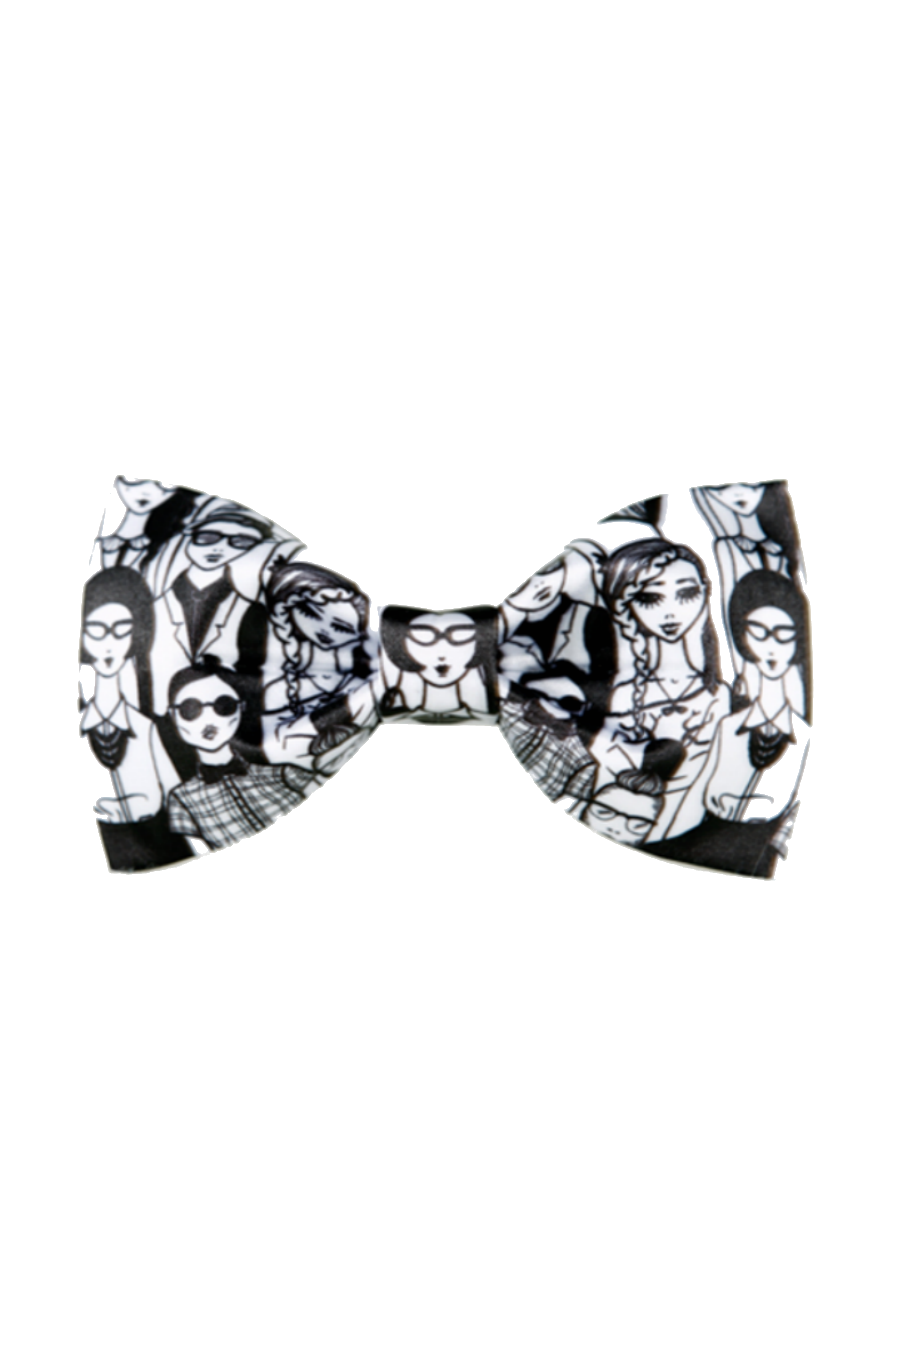 Black White Graffiti Pattern Bow Tie